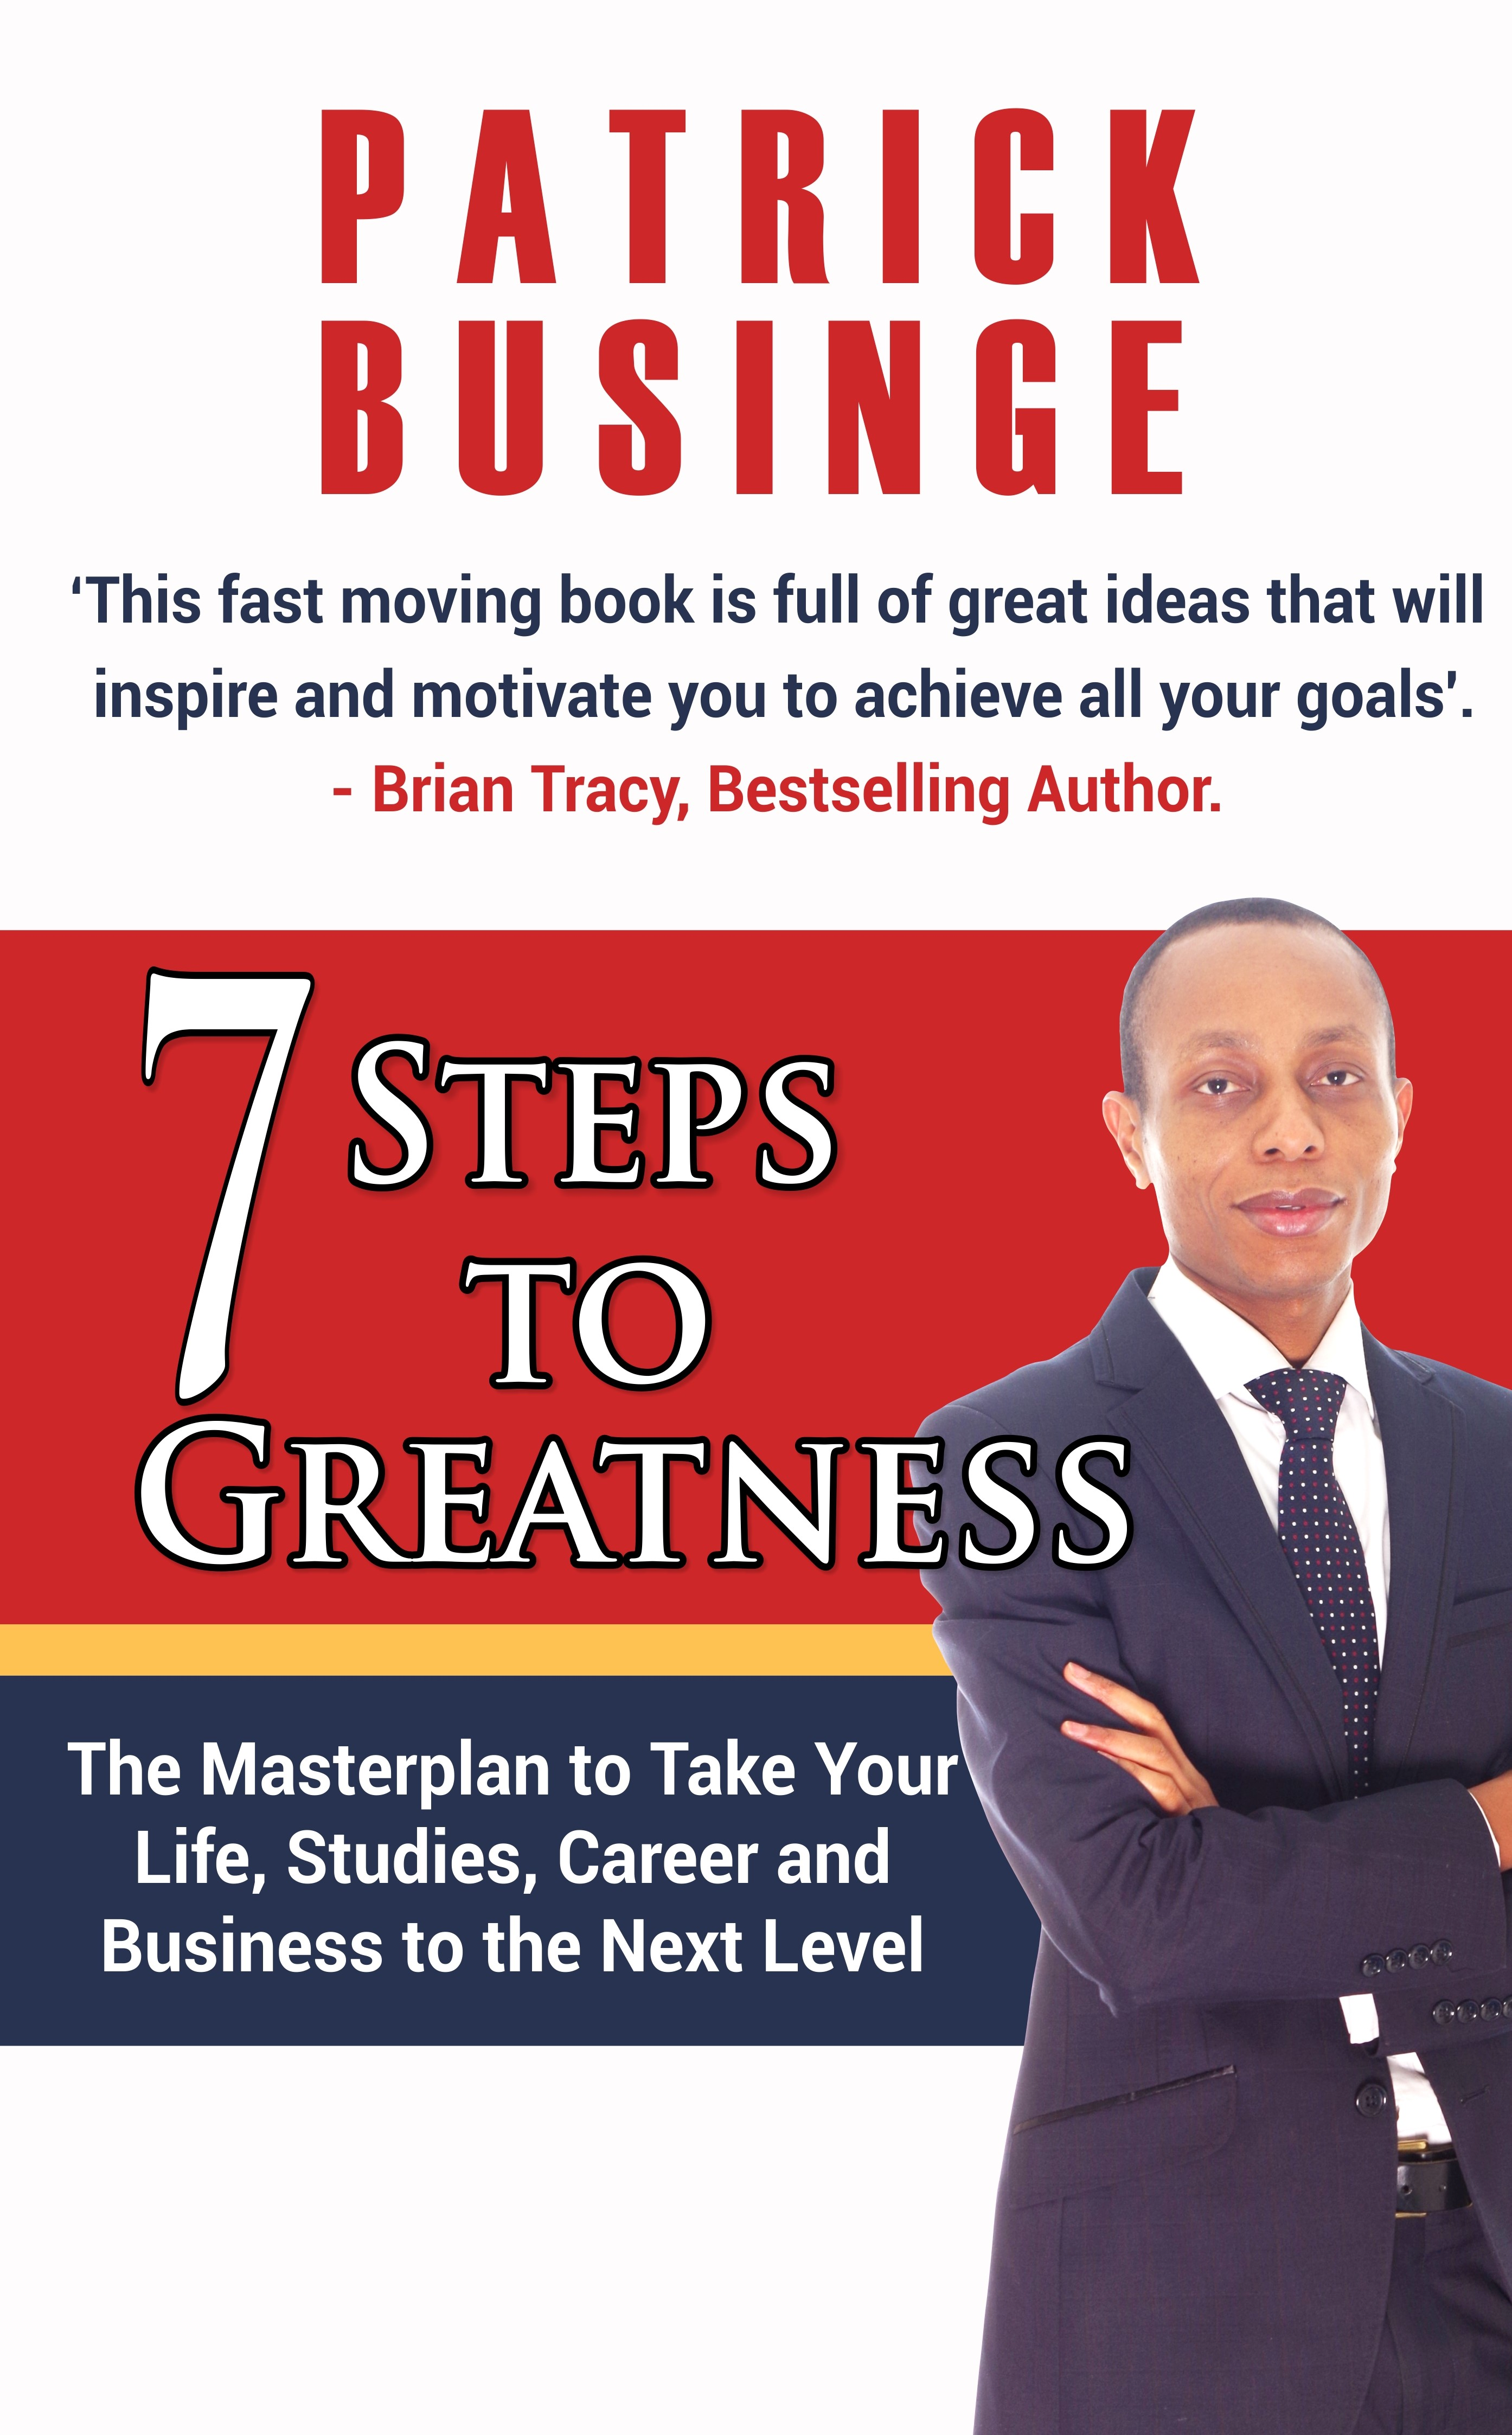 Steps for greatness